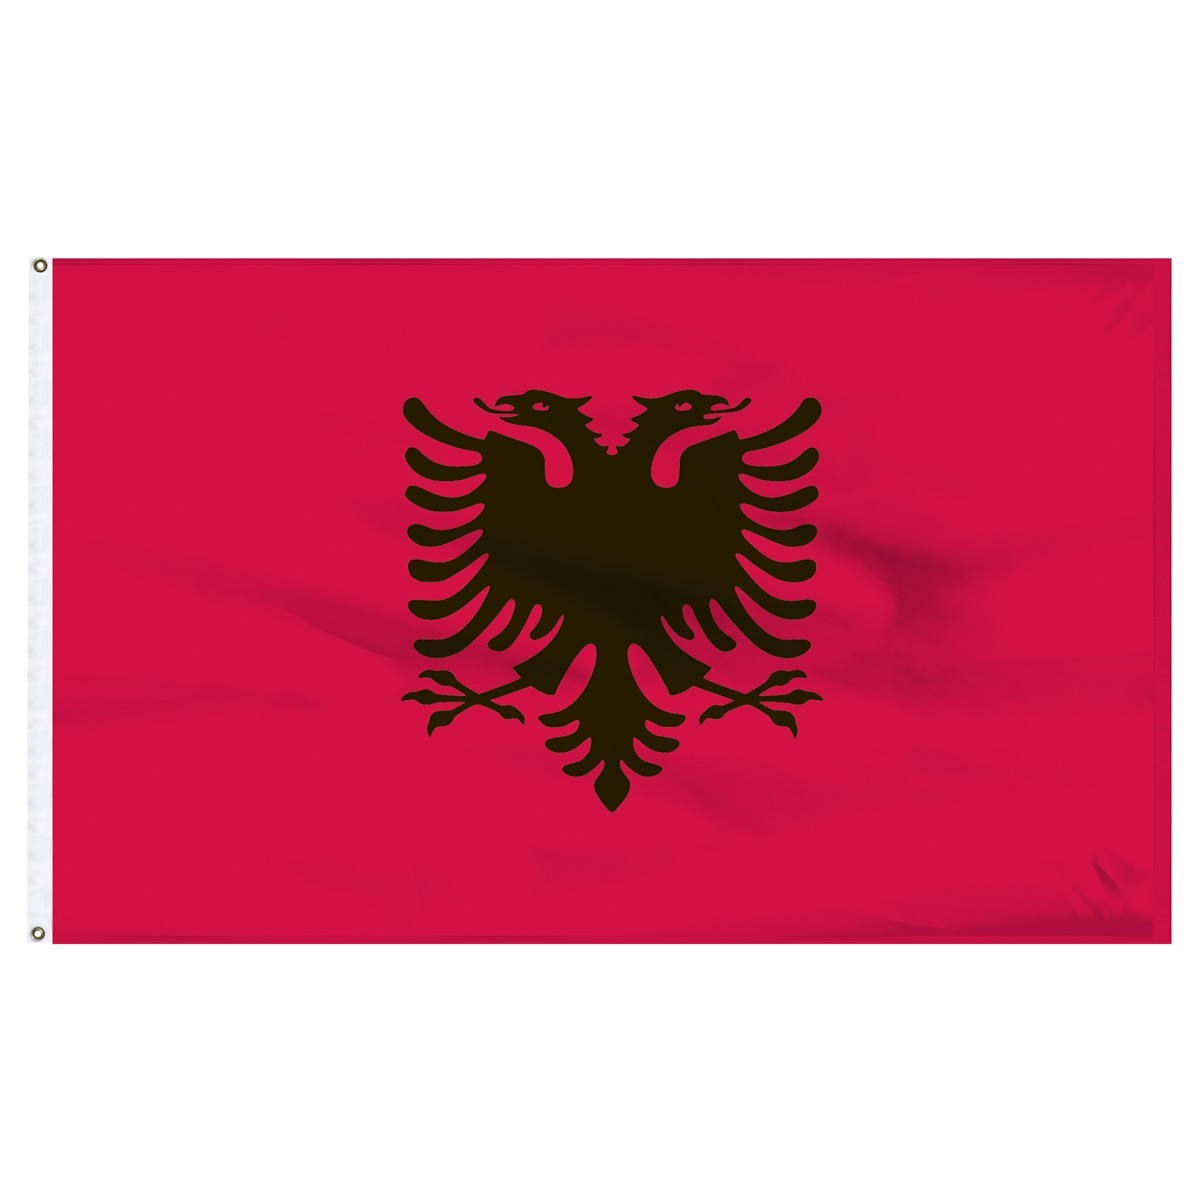 Albania 3' x 5' Outdoor Nylon Country Flag